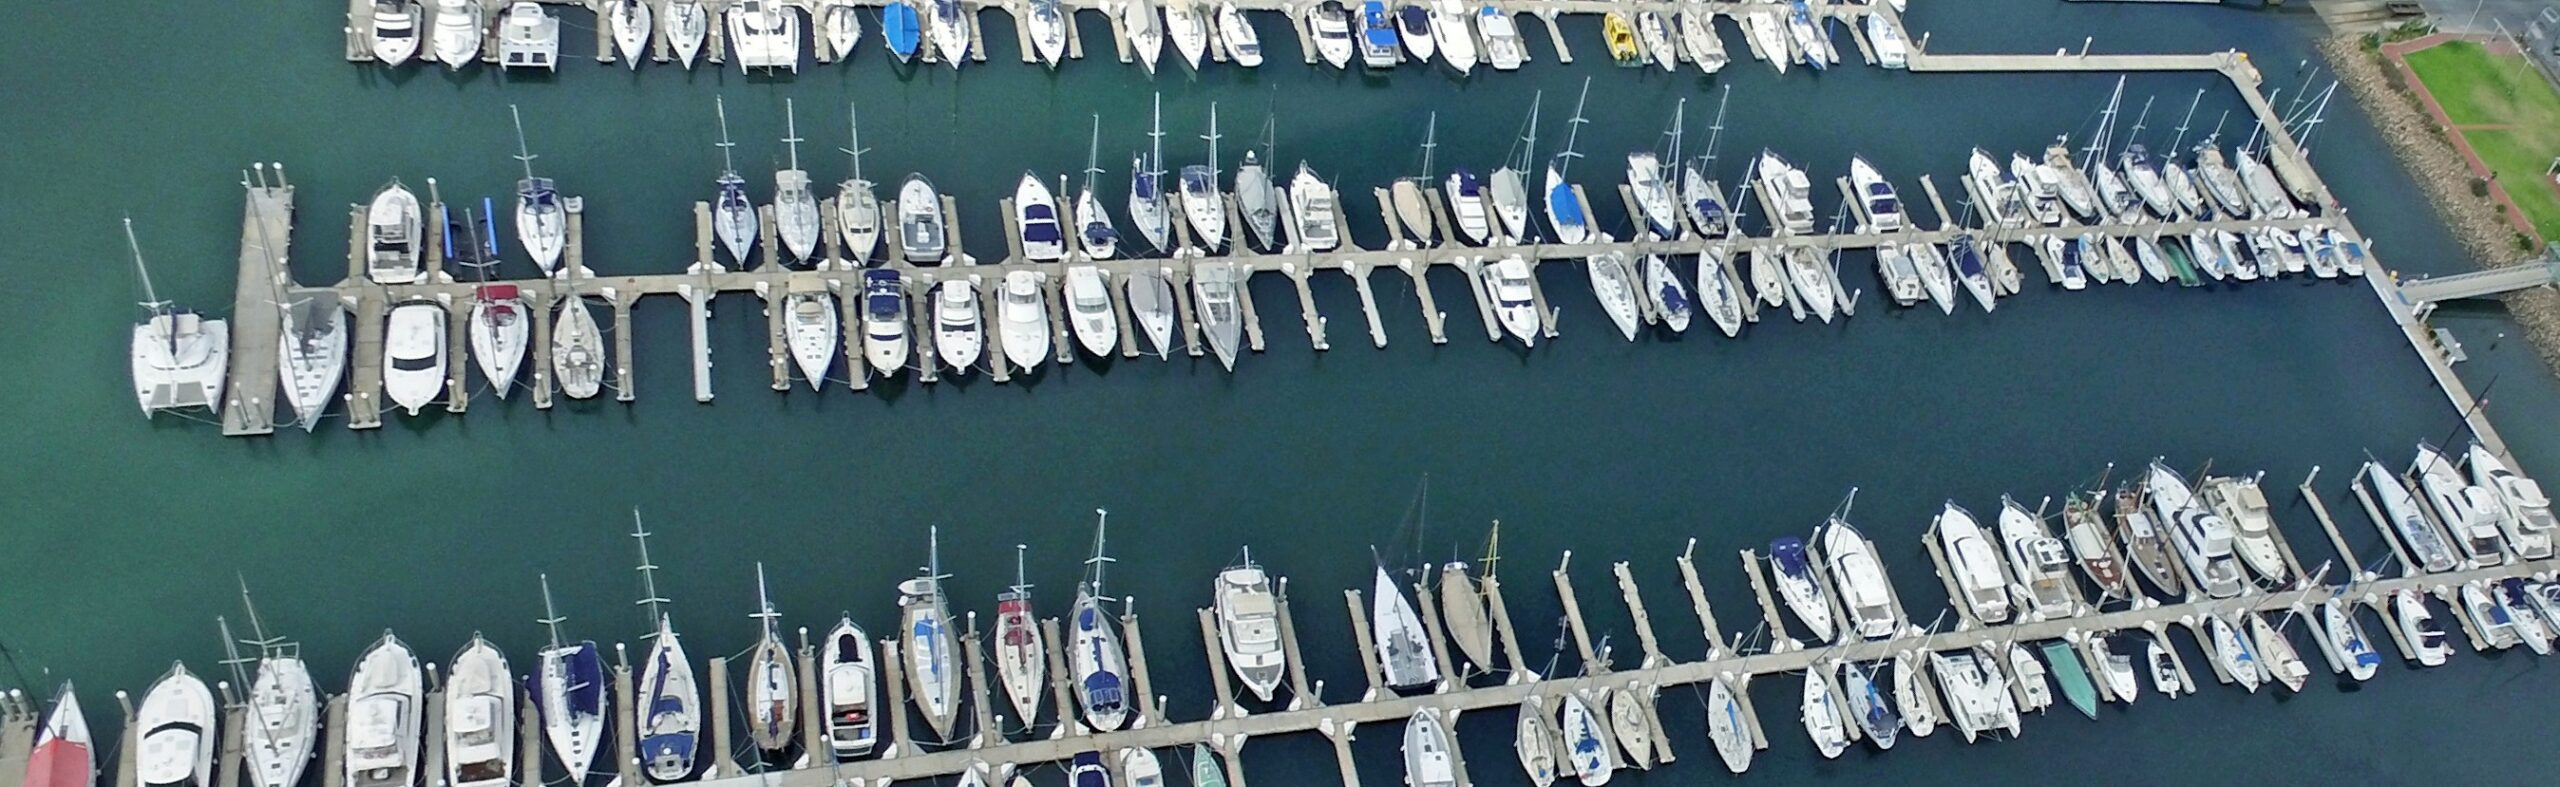 CYCSA pictured from above